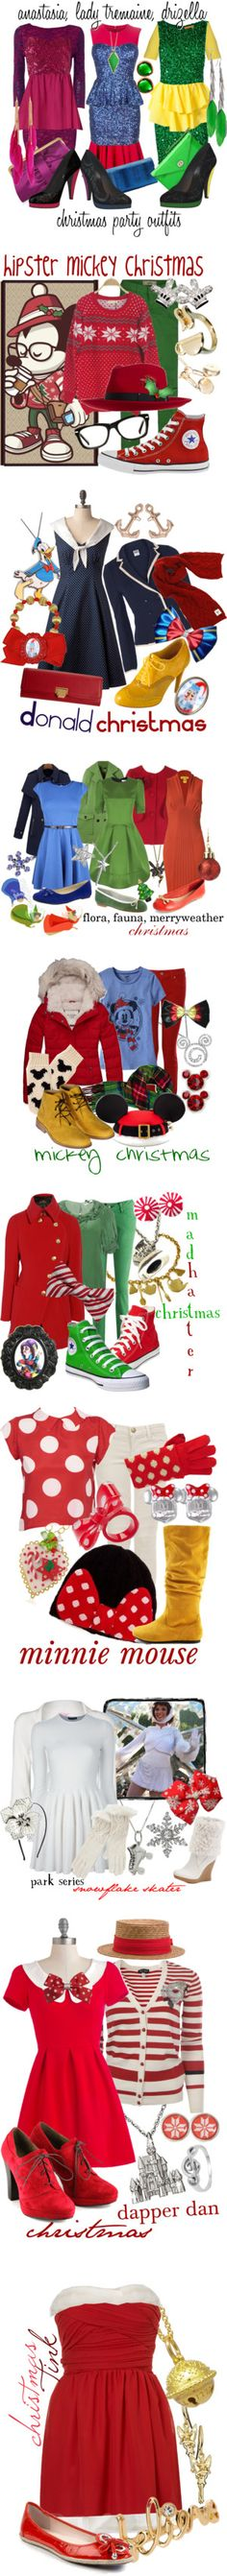 """Disney Christmas"" by princesschandler on Polyvore"